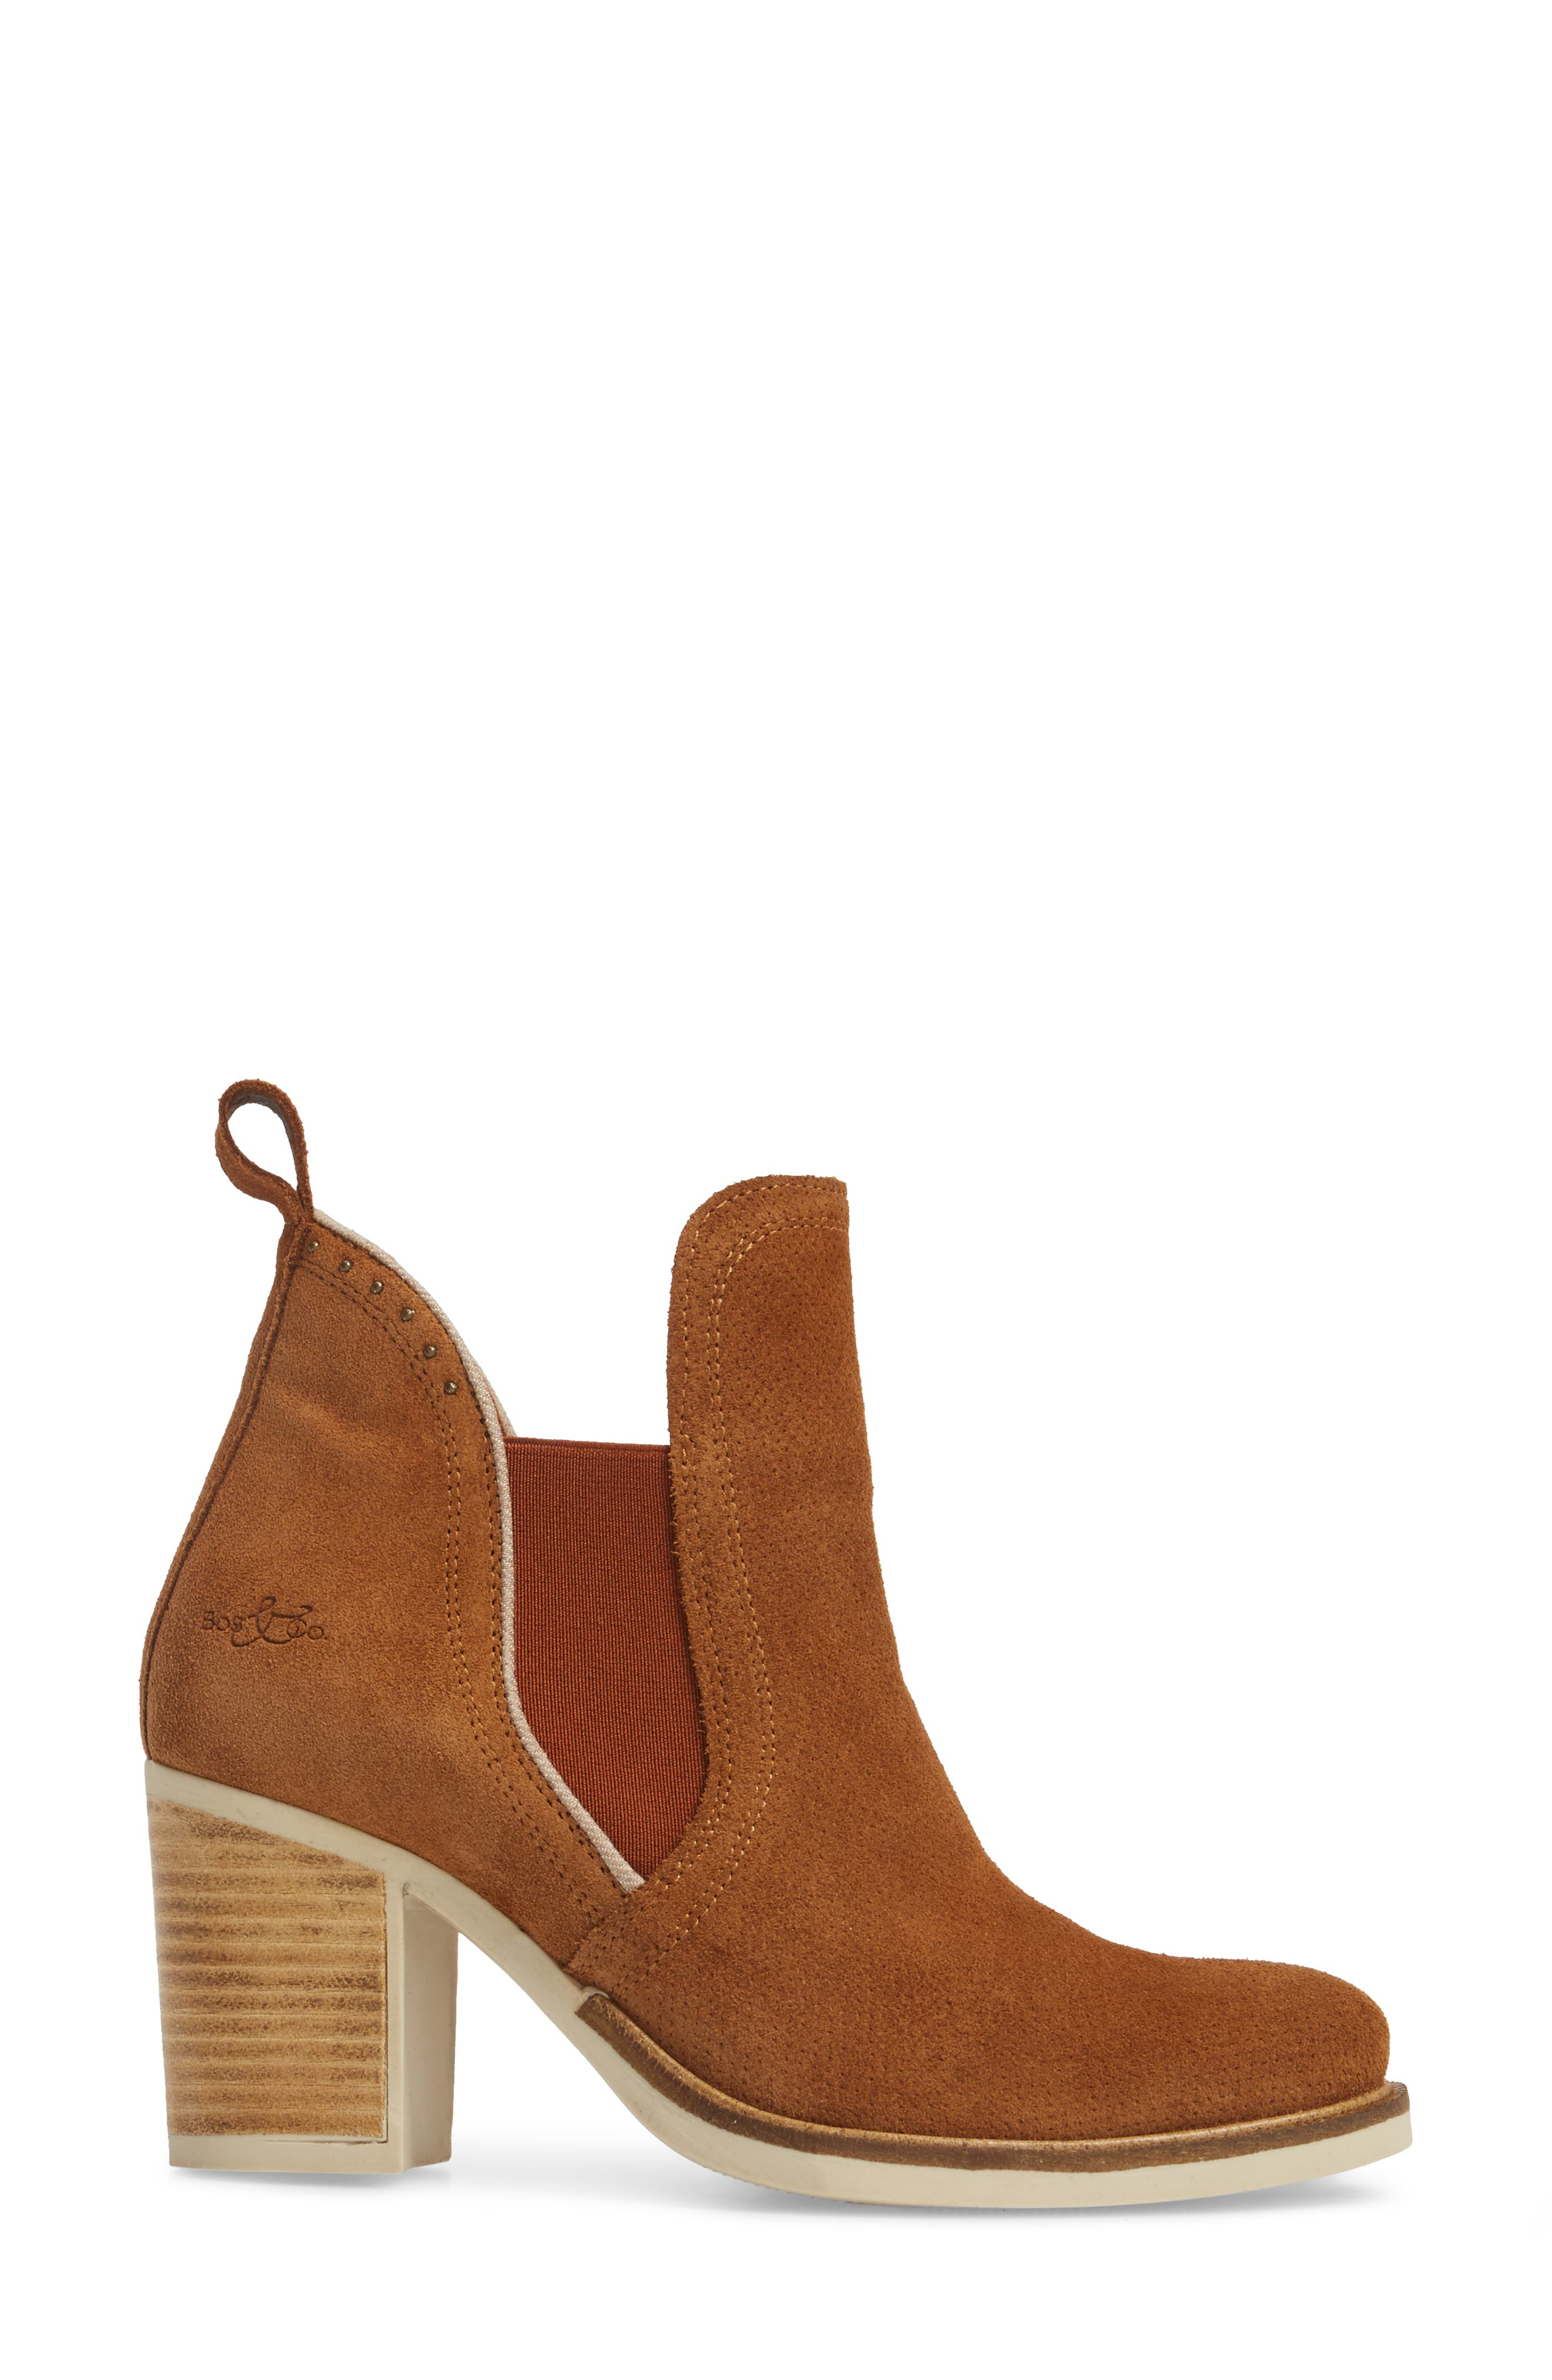 Breves Boot,                             Alternate thumbnail 3, color,                             WHISKY/ BEIGE SUEDE